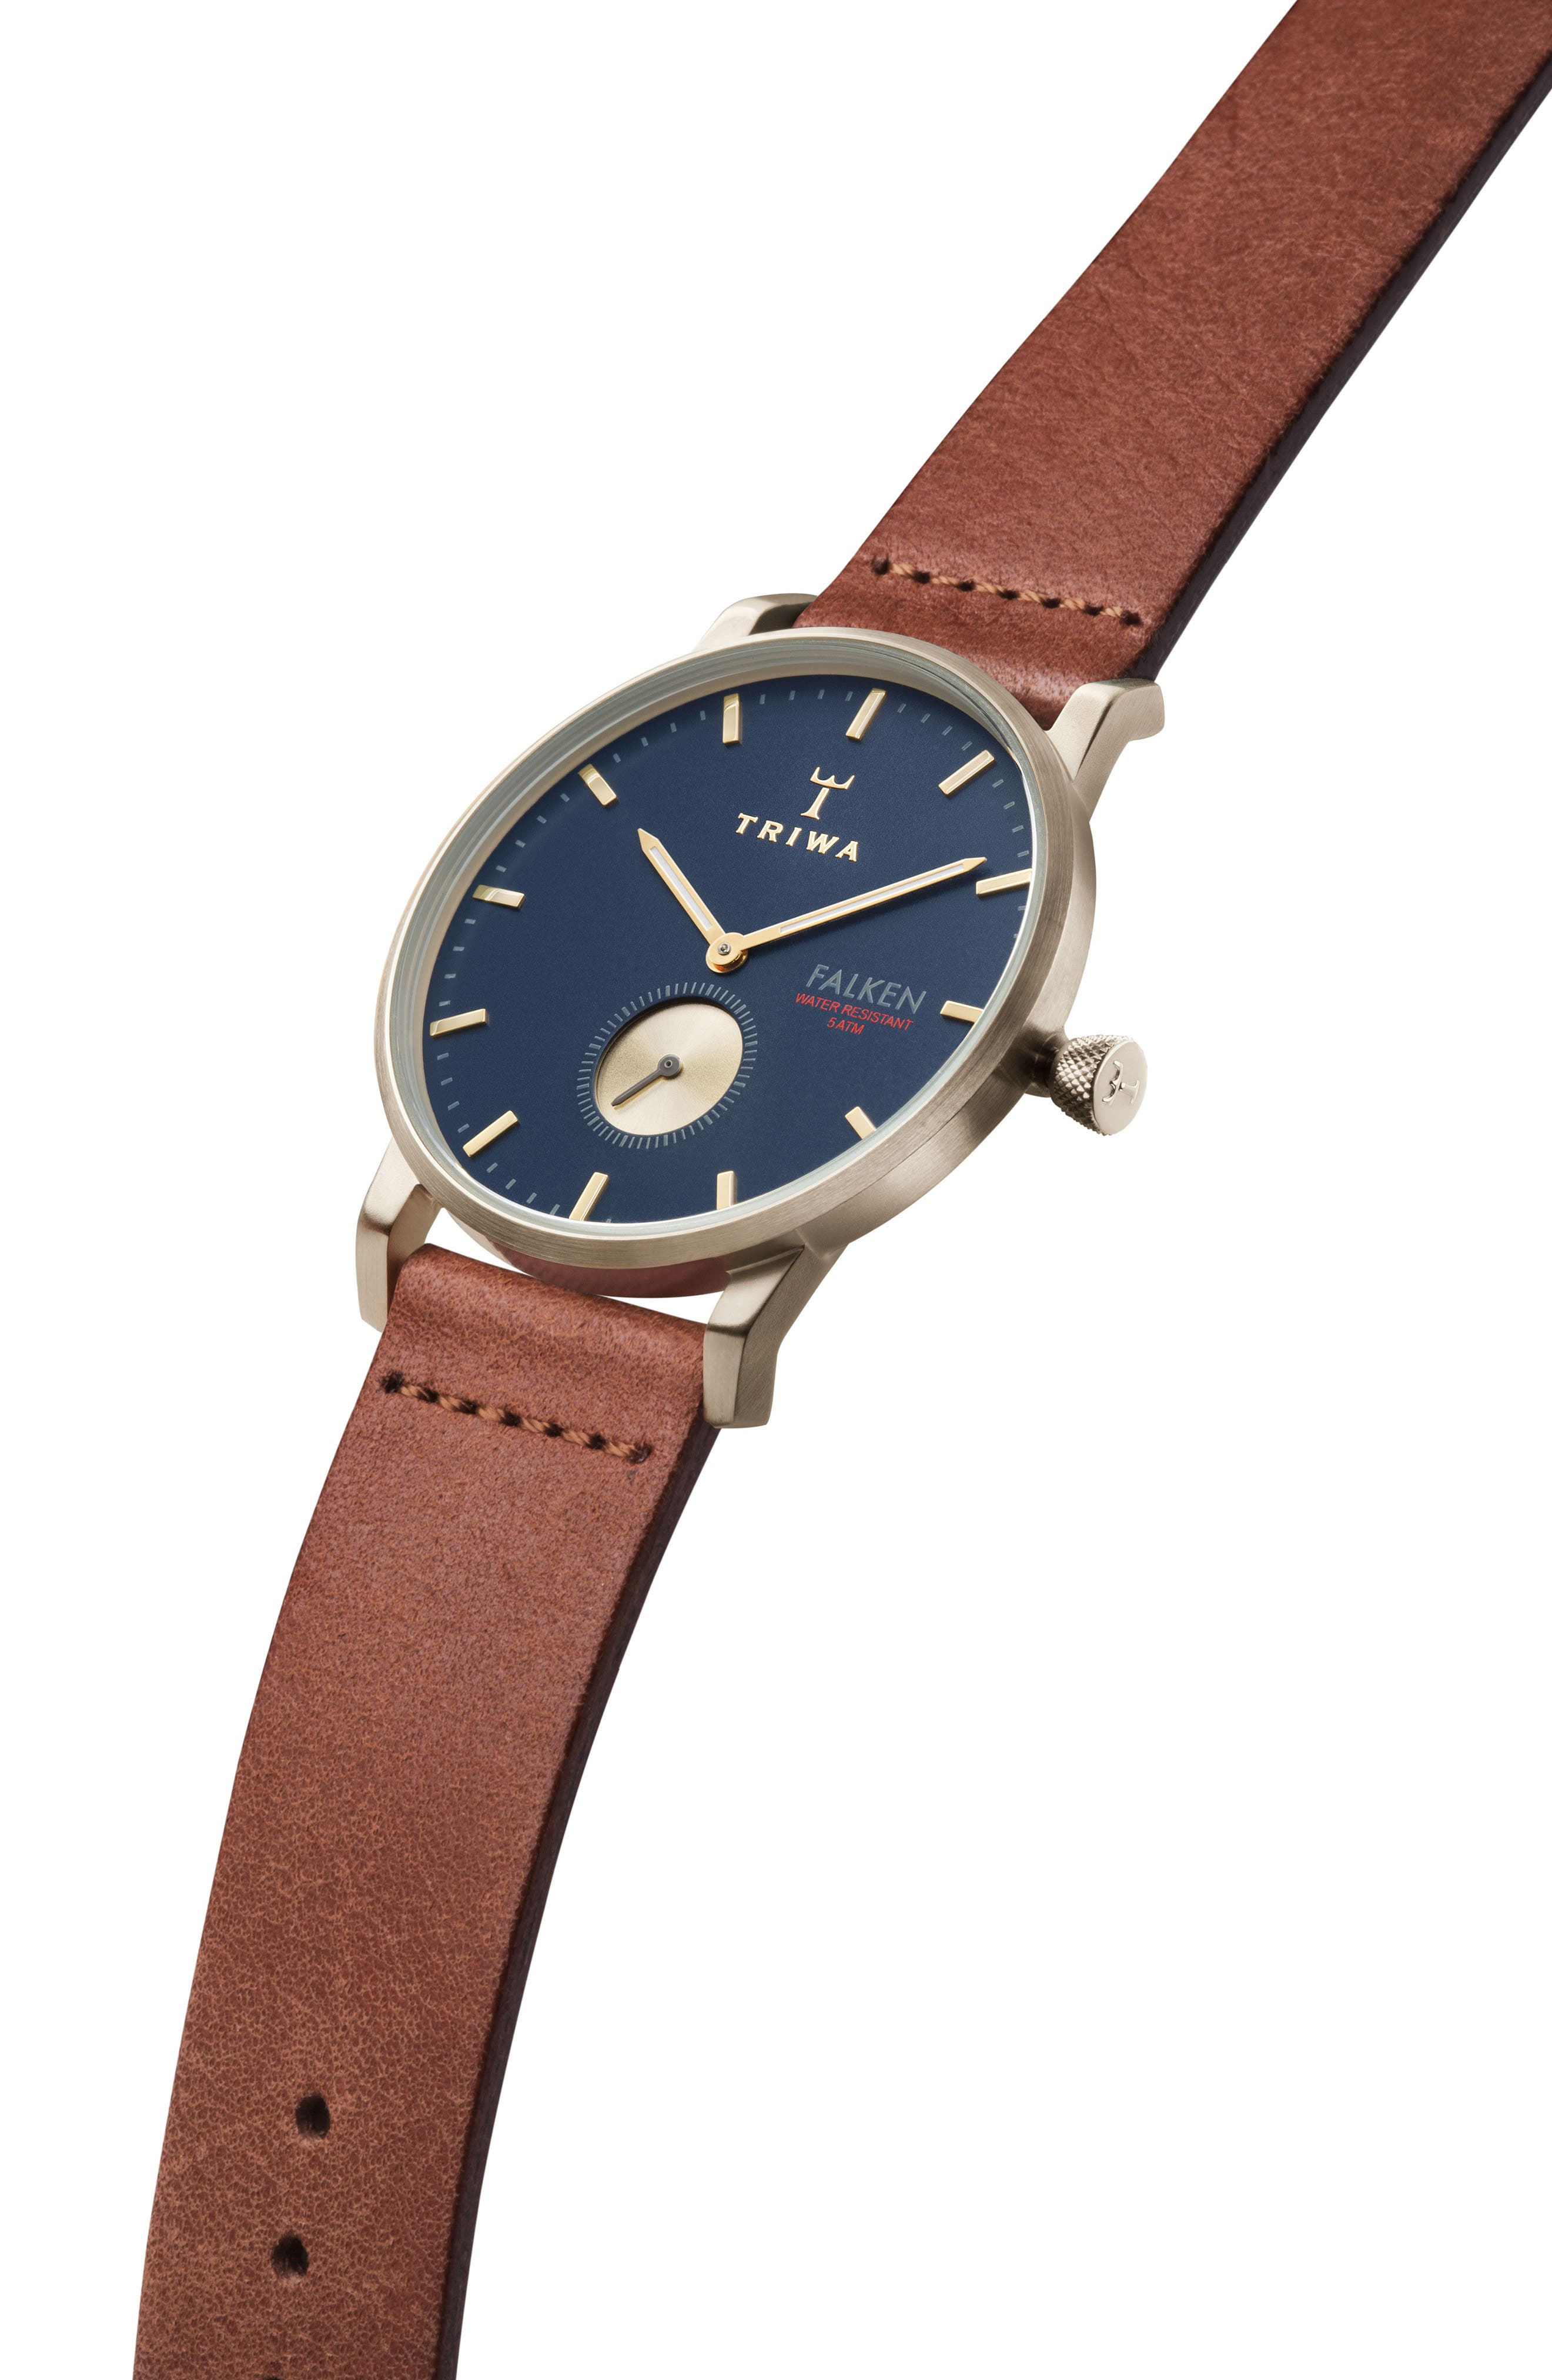 Loch Falken Organic Leather Strap Watch, 38mm,                             Alternate thumbnail 2, color,                             BROWN/ NAVY/ GOLD